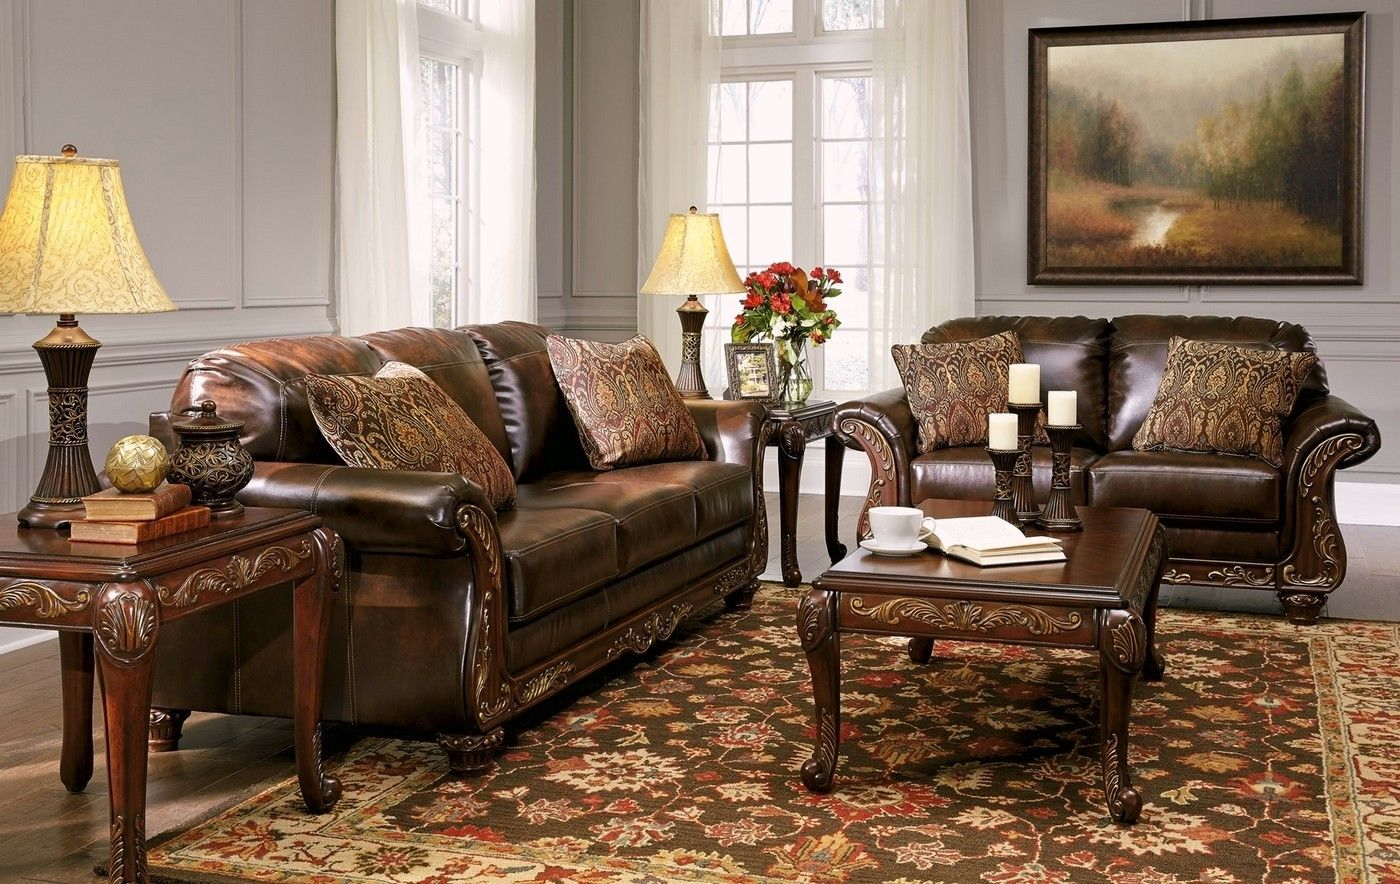 Vanceton brown leather traditional wood sofa loveseat living room set Living room loveseats